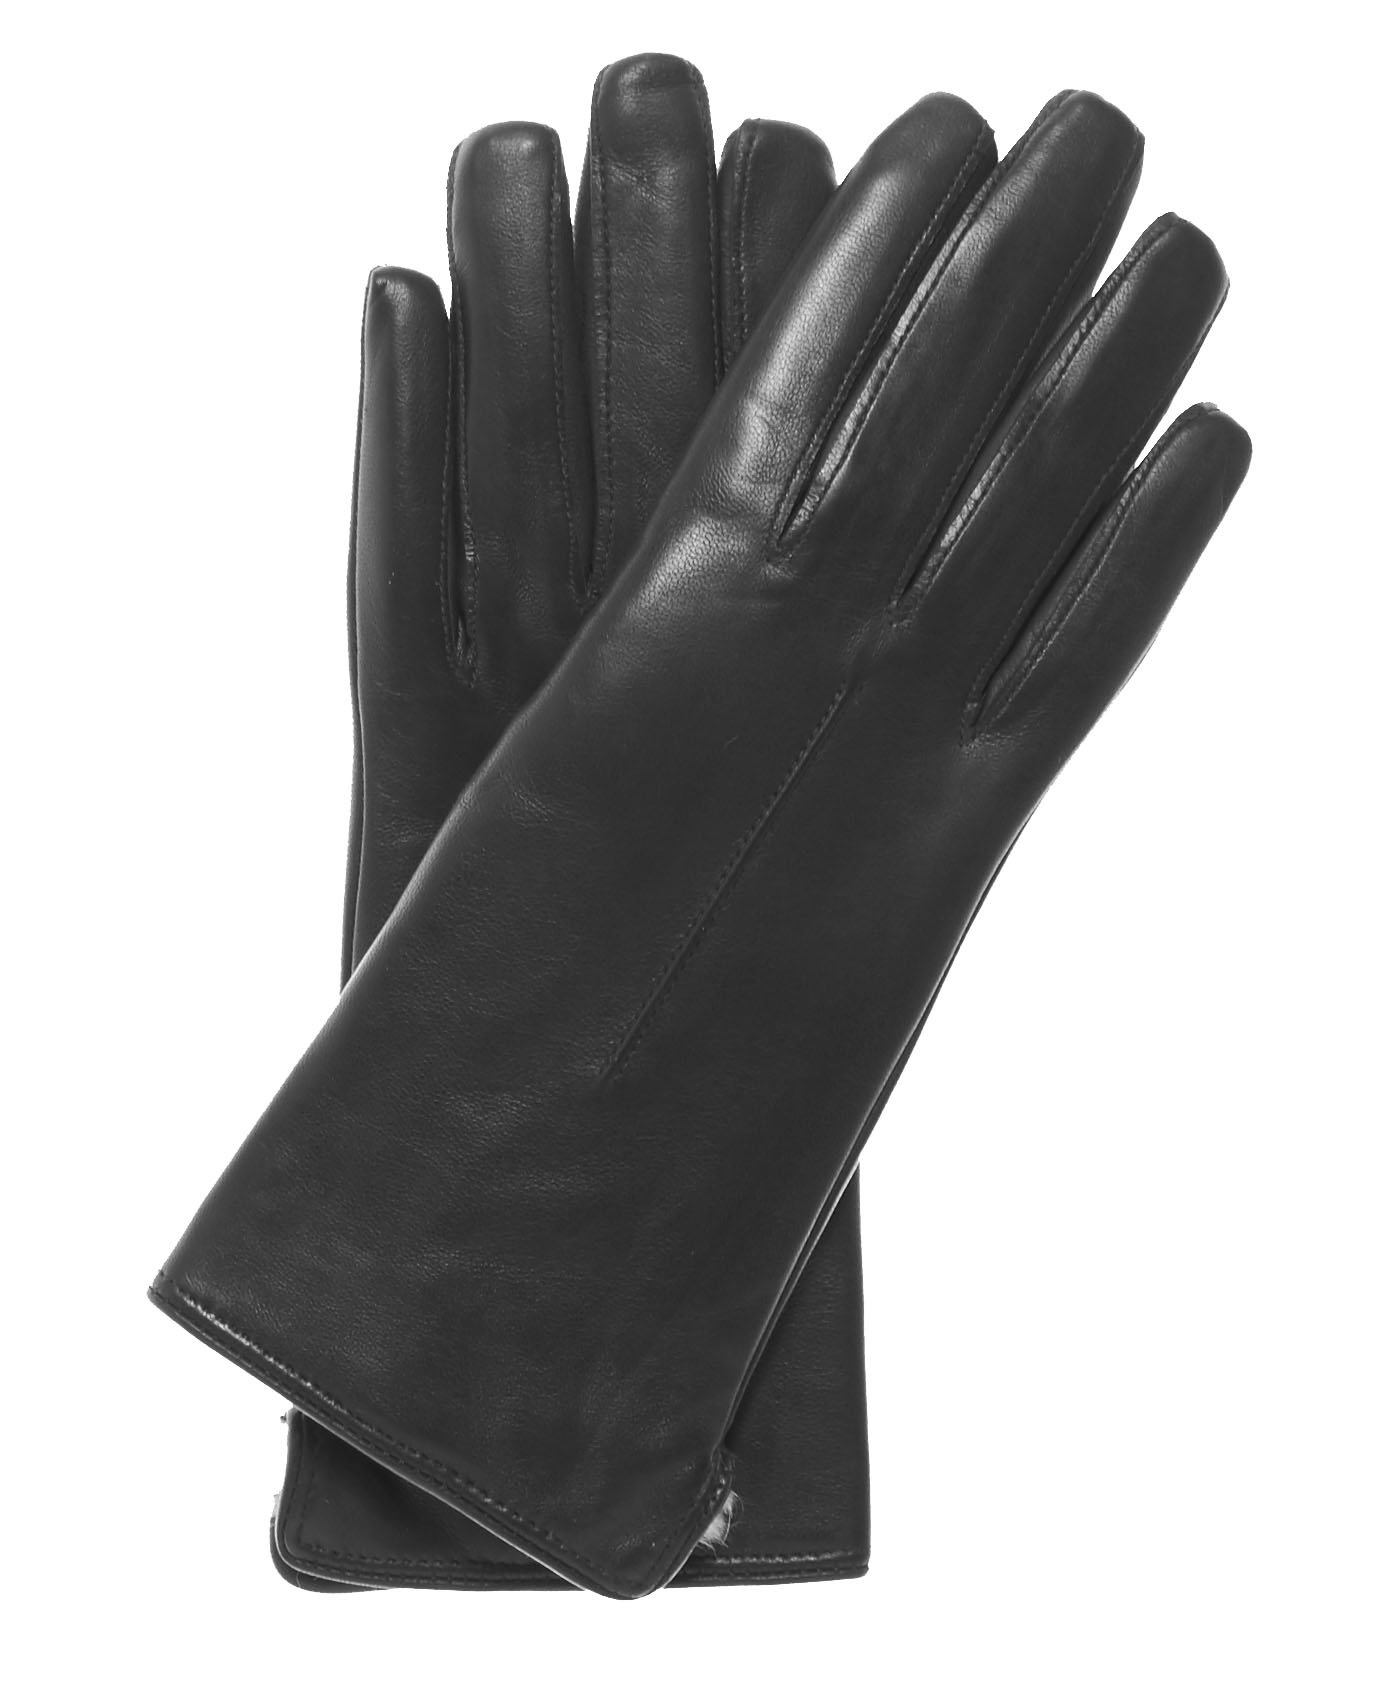 Fratelli Orsini Everyday Women's Our Bestselling Italian Rabbit Fur Gloves Size 7 Color Black by Fratelli Orsini Everyday